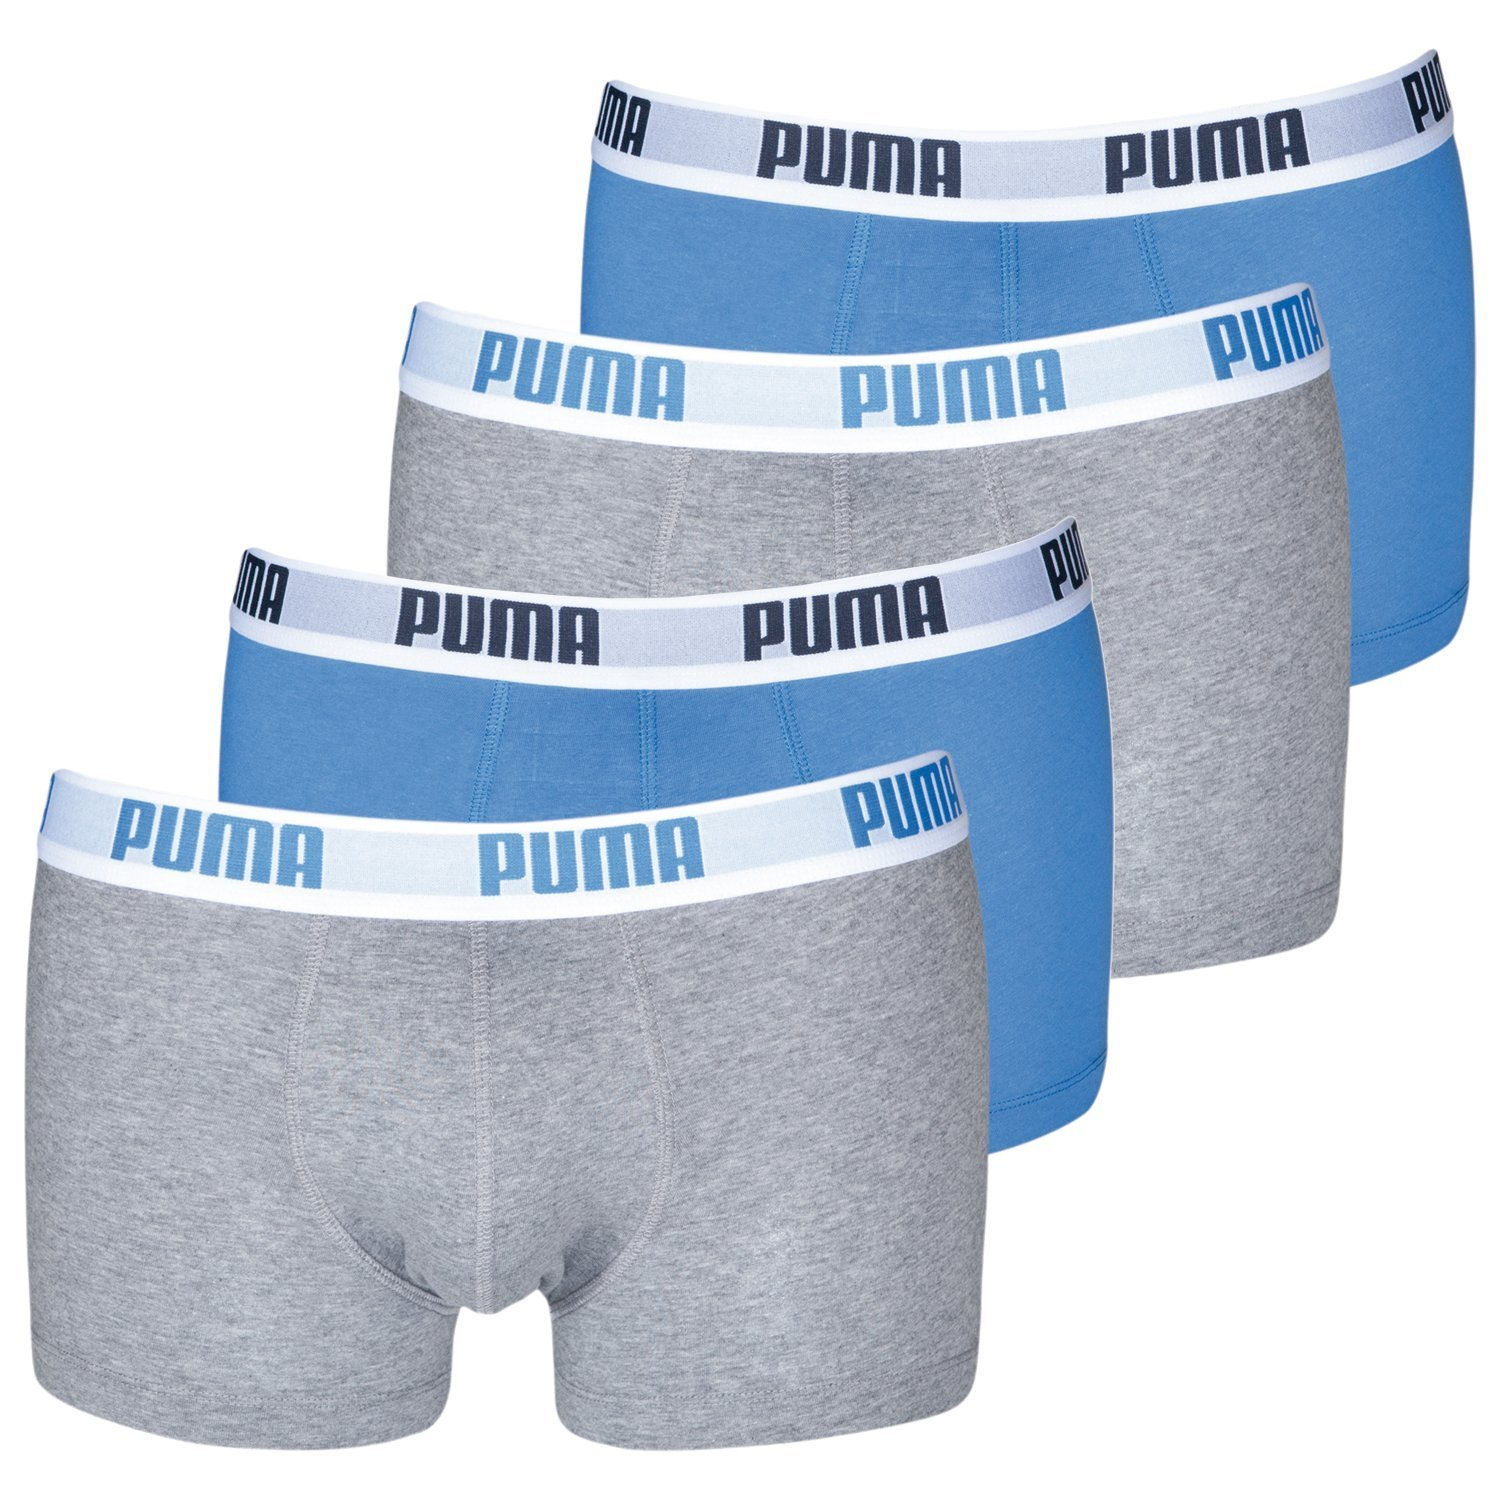 Puma Mens Basic Boxers Boxer Shorts Various Colours Pack of 4 - X-Large, Blue